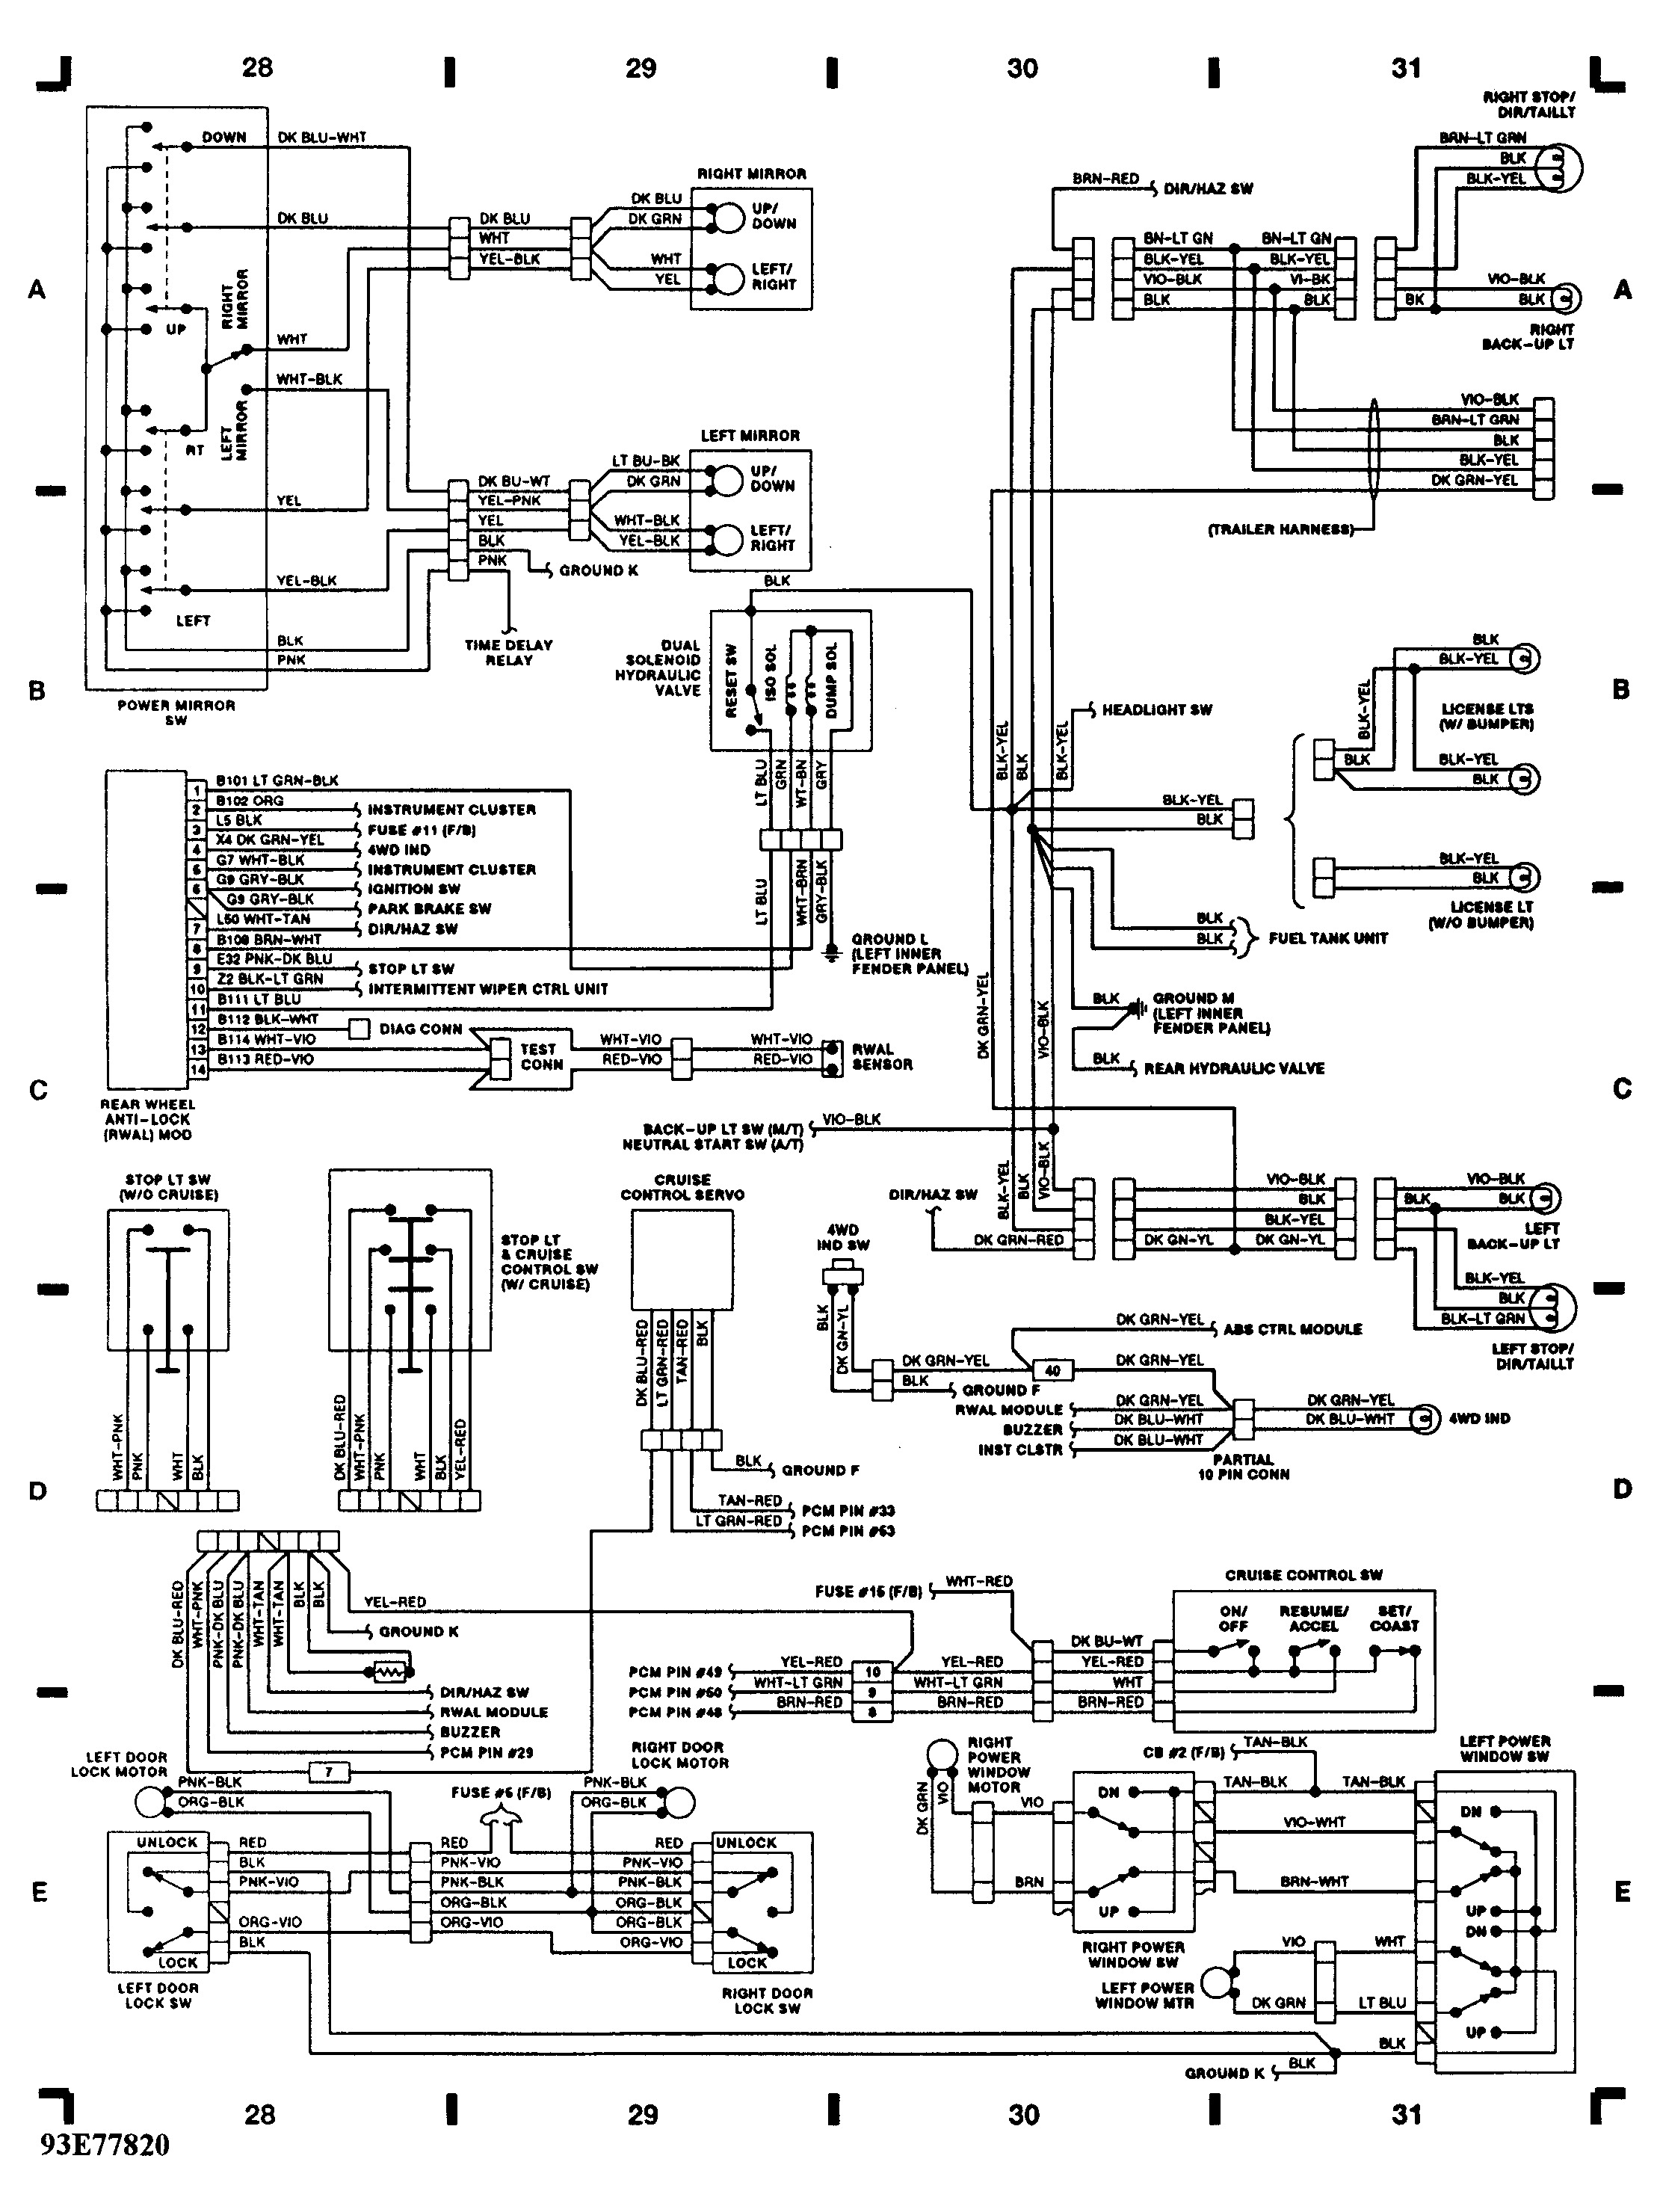 2006 F350 Trailer Wiring Diagram. Parts. Wiring Diagram Images